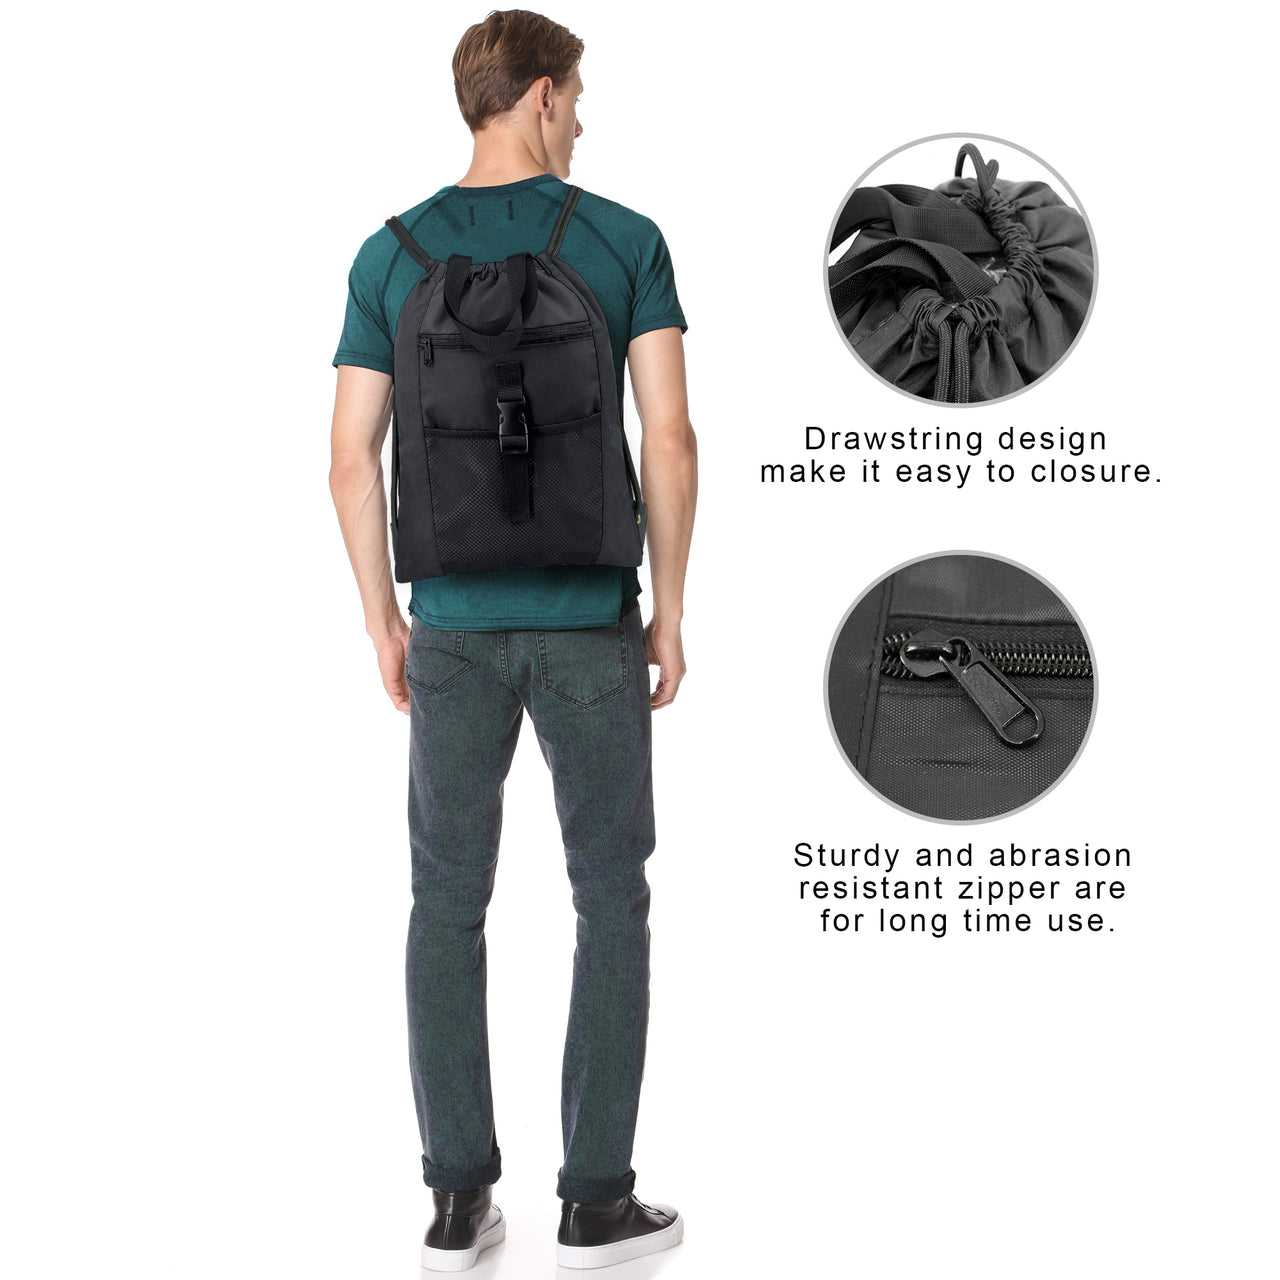 BeeGreen Drawstring Backpack Bag Gym Sports String Bags